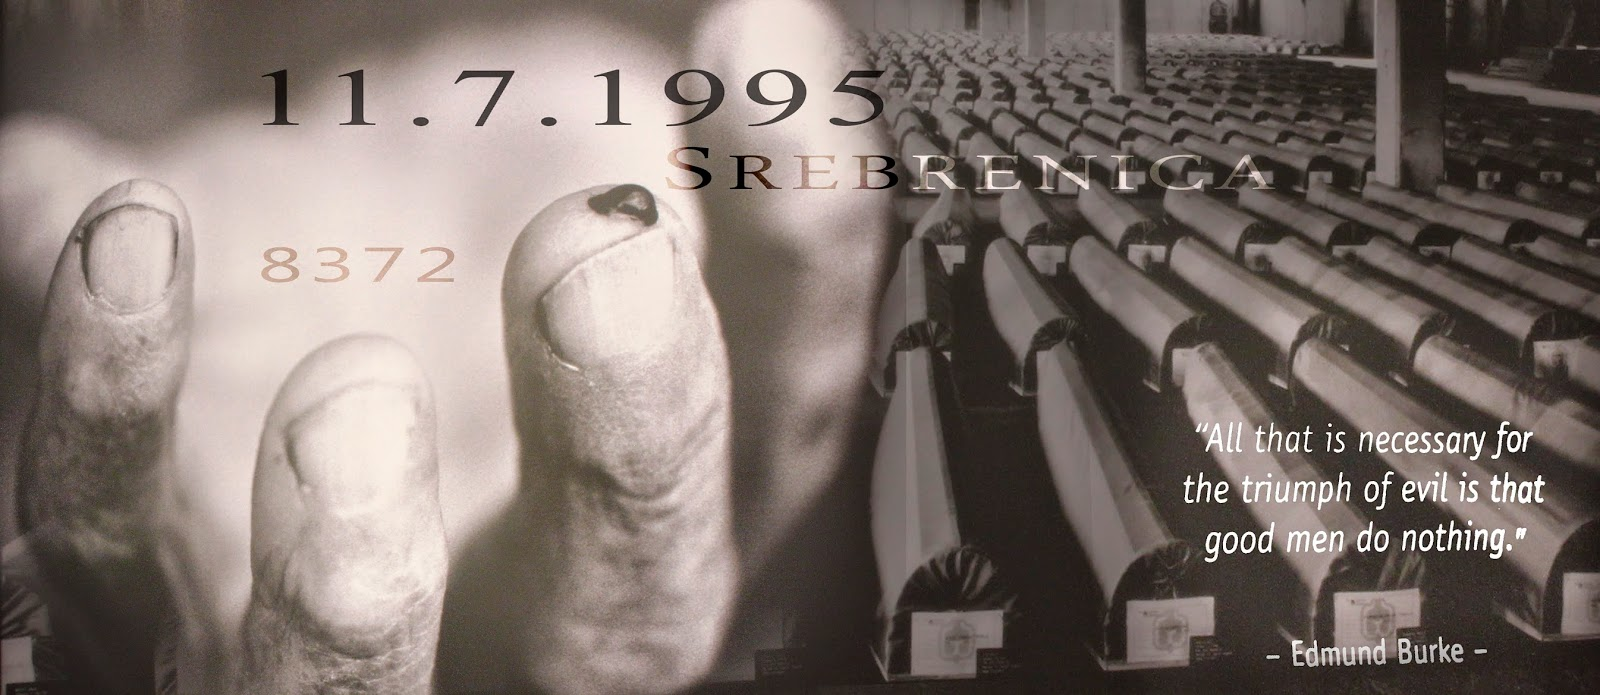 Gallery 11/07/95 – Design by Ricardo Praga based on the photography artwork from Tarik Samarah